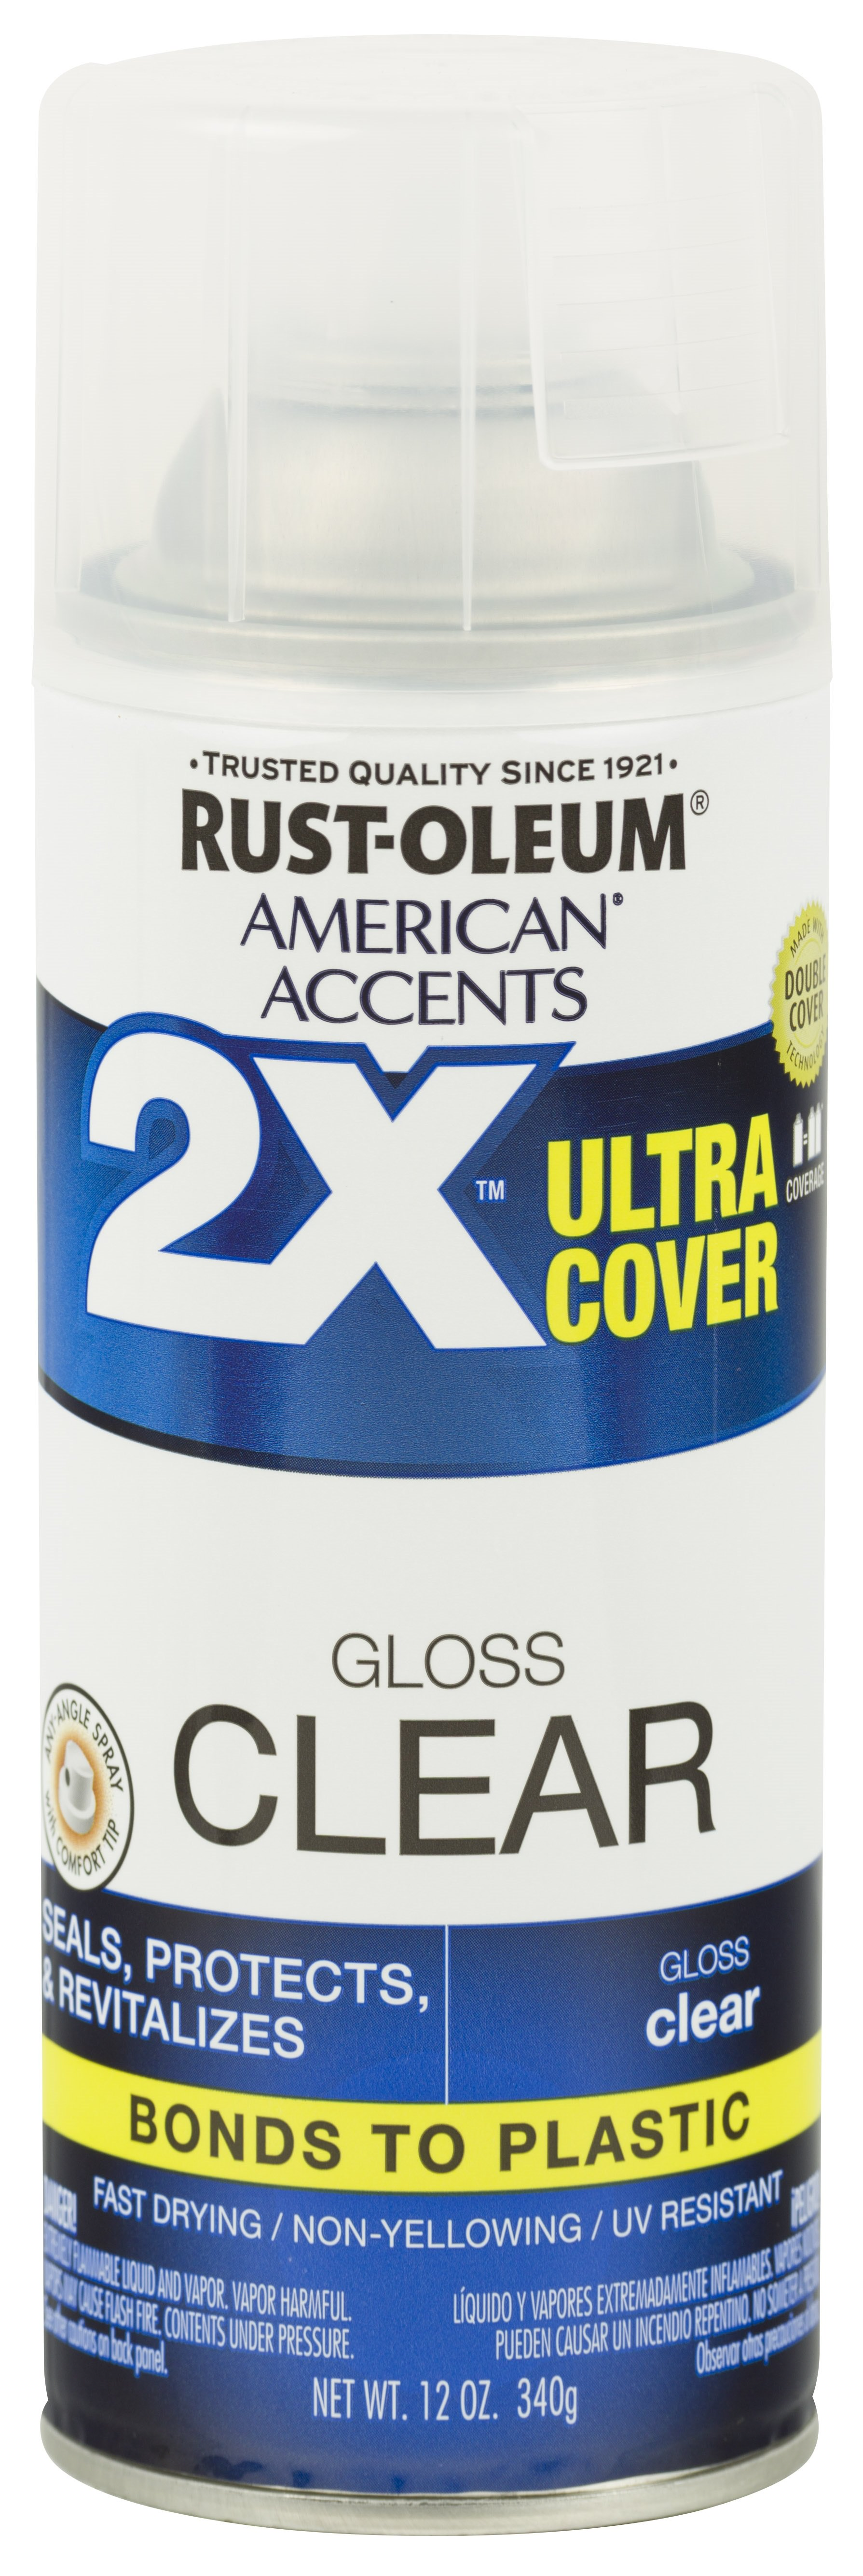 Clear, Rust-Oleum American Accents 2X Ultra Cover, Gloss Spray Paint, 12 oz